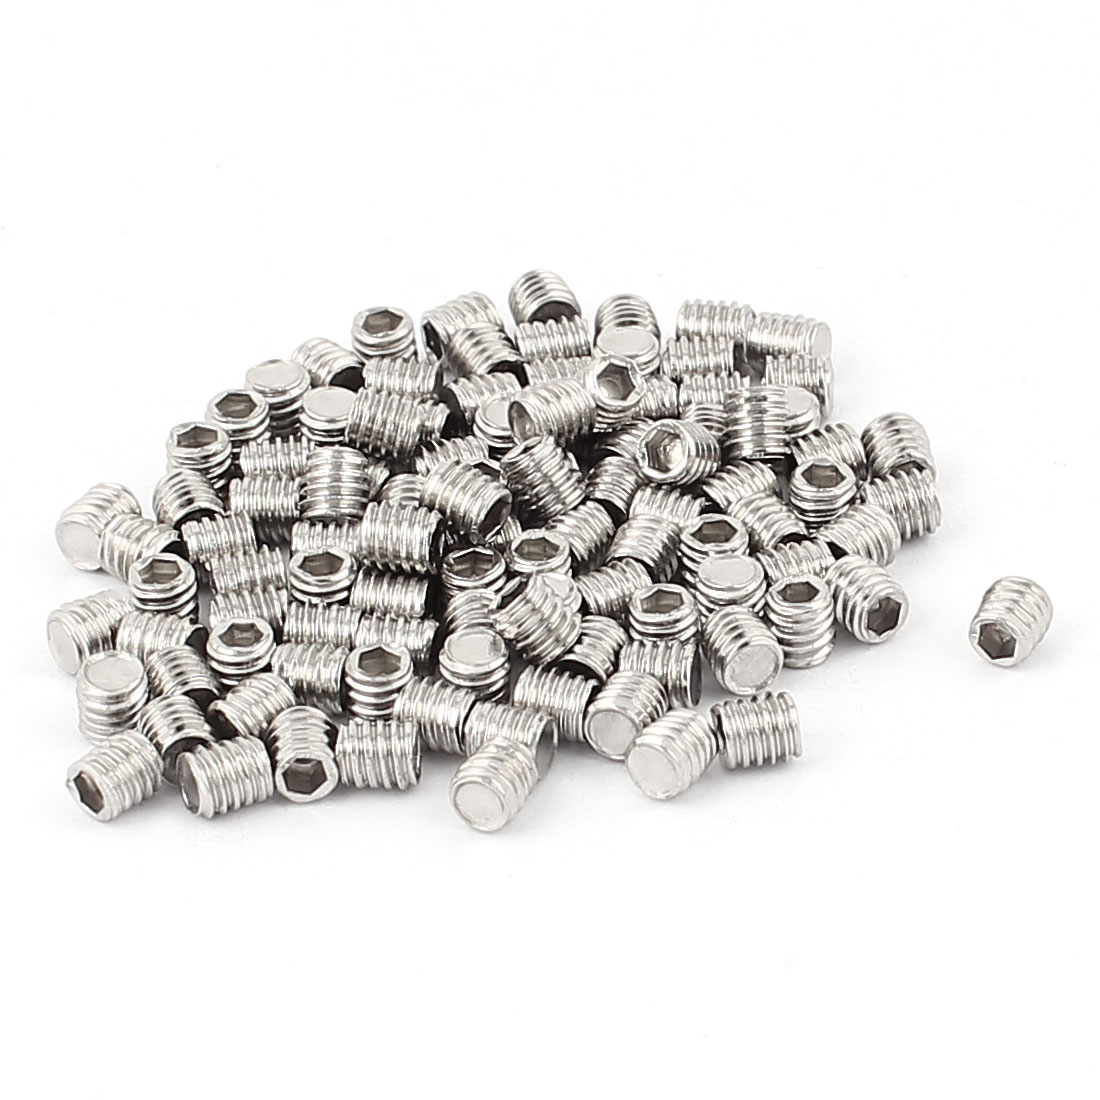 Stainless Steel Hex Socket Flat Point Set Grub Screw 100pcs